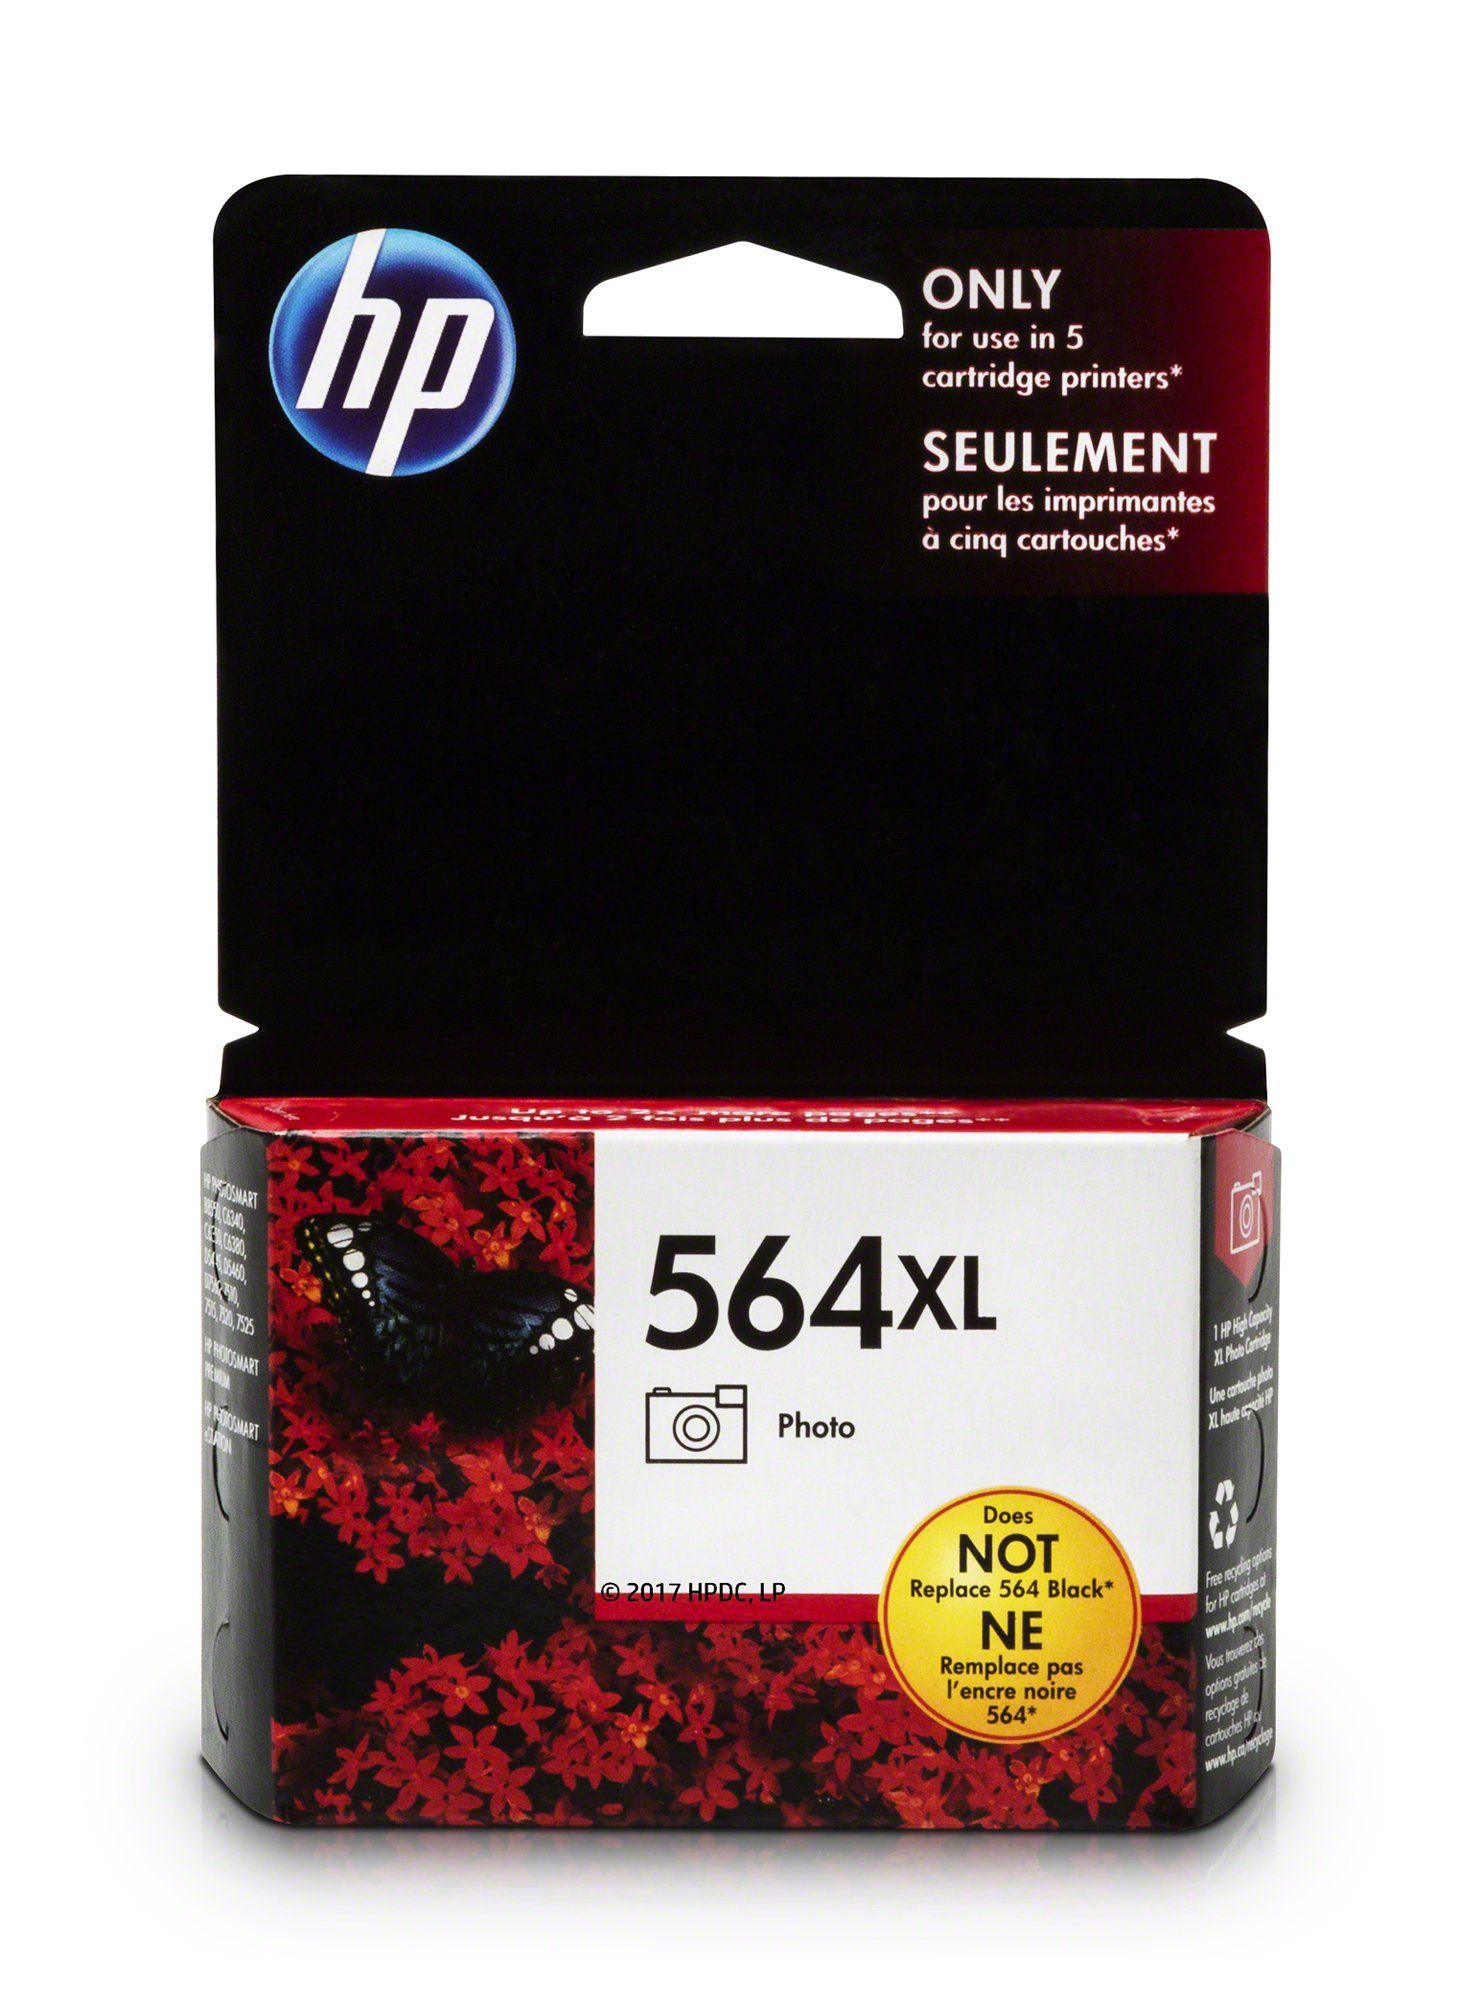 HP 564XL Photo Ink Cartridge (CB322WN) for HP Photosmart B8550 D5445 D5460 D7560 7510 7515 7520 7525 C6340 C6350 C6380 C510a C309g C310a HP Photosmart Premium Fax e-All-in-One Printer C410a HP Photosmart Premium TouchSmart Web All-in-One Printer C309n